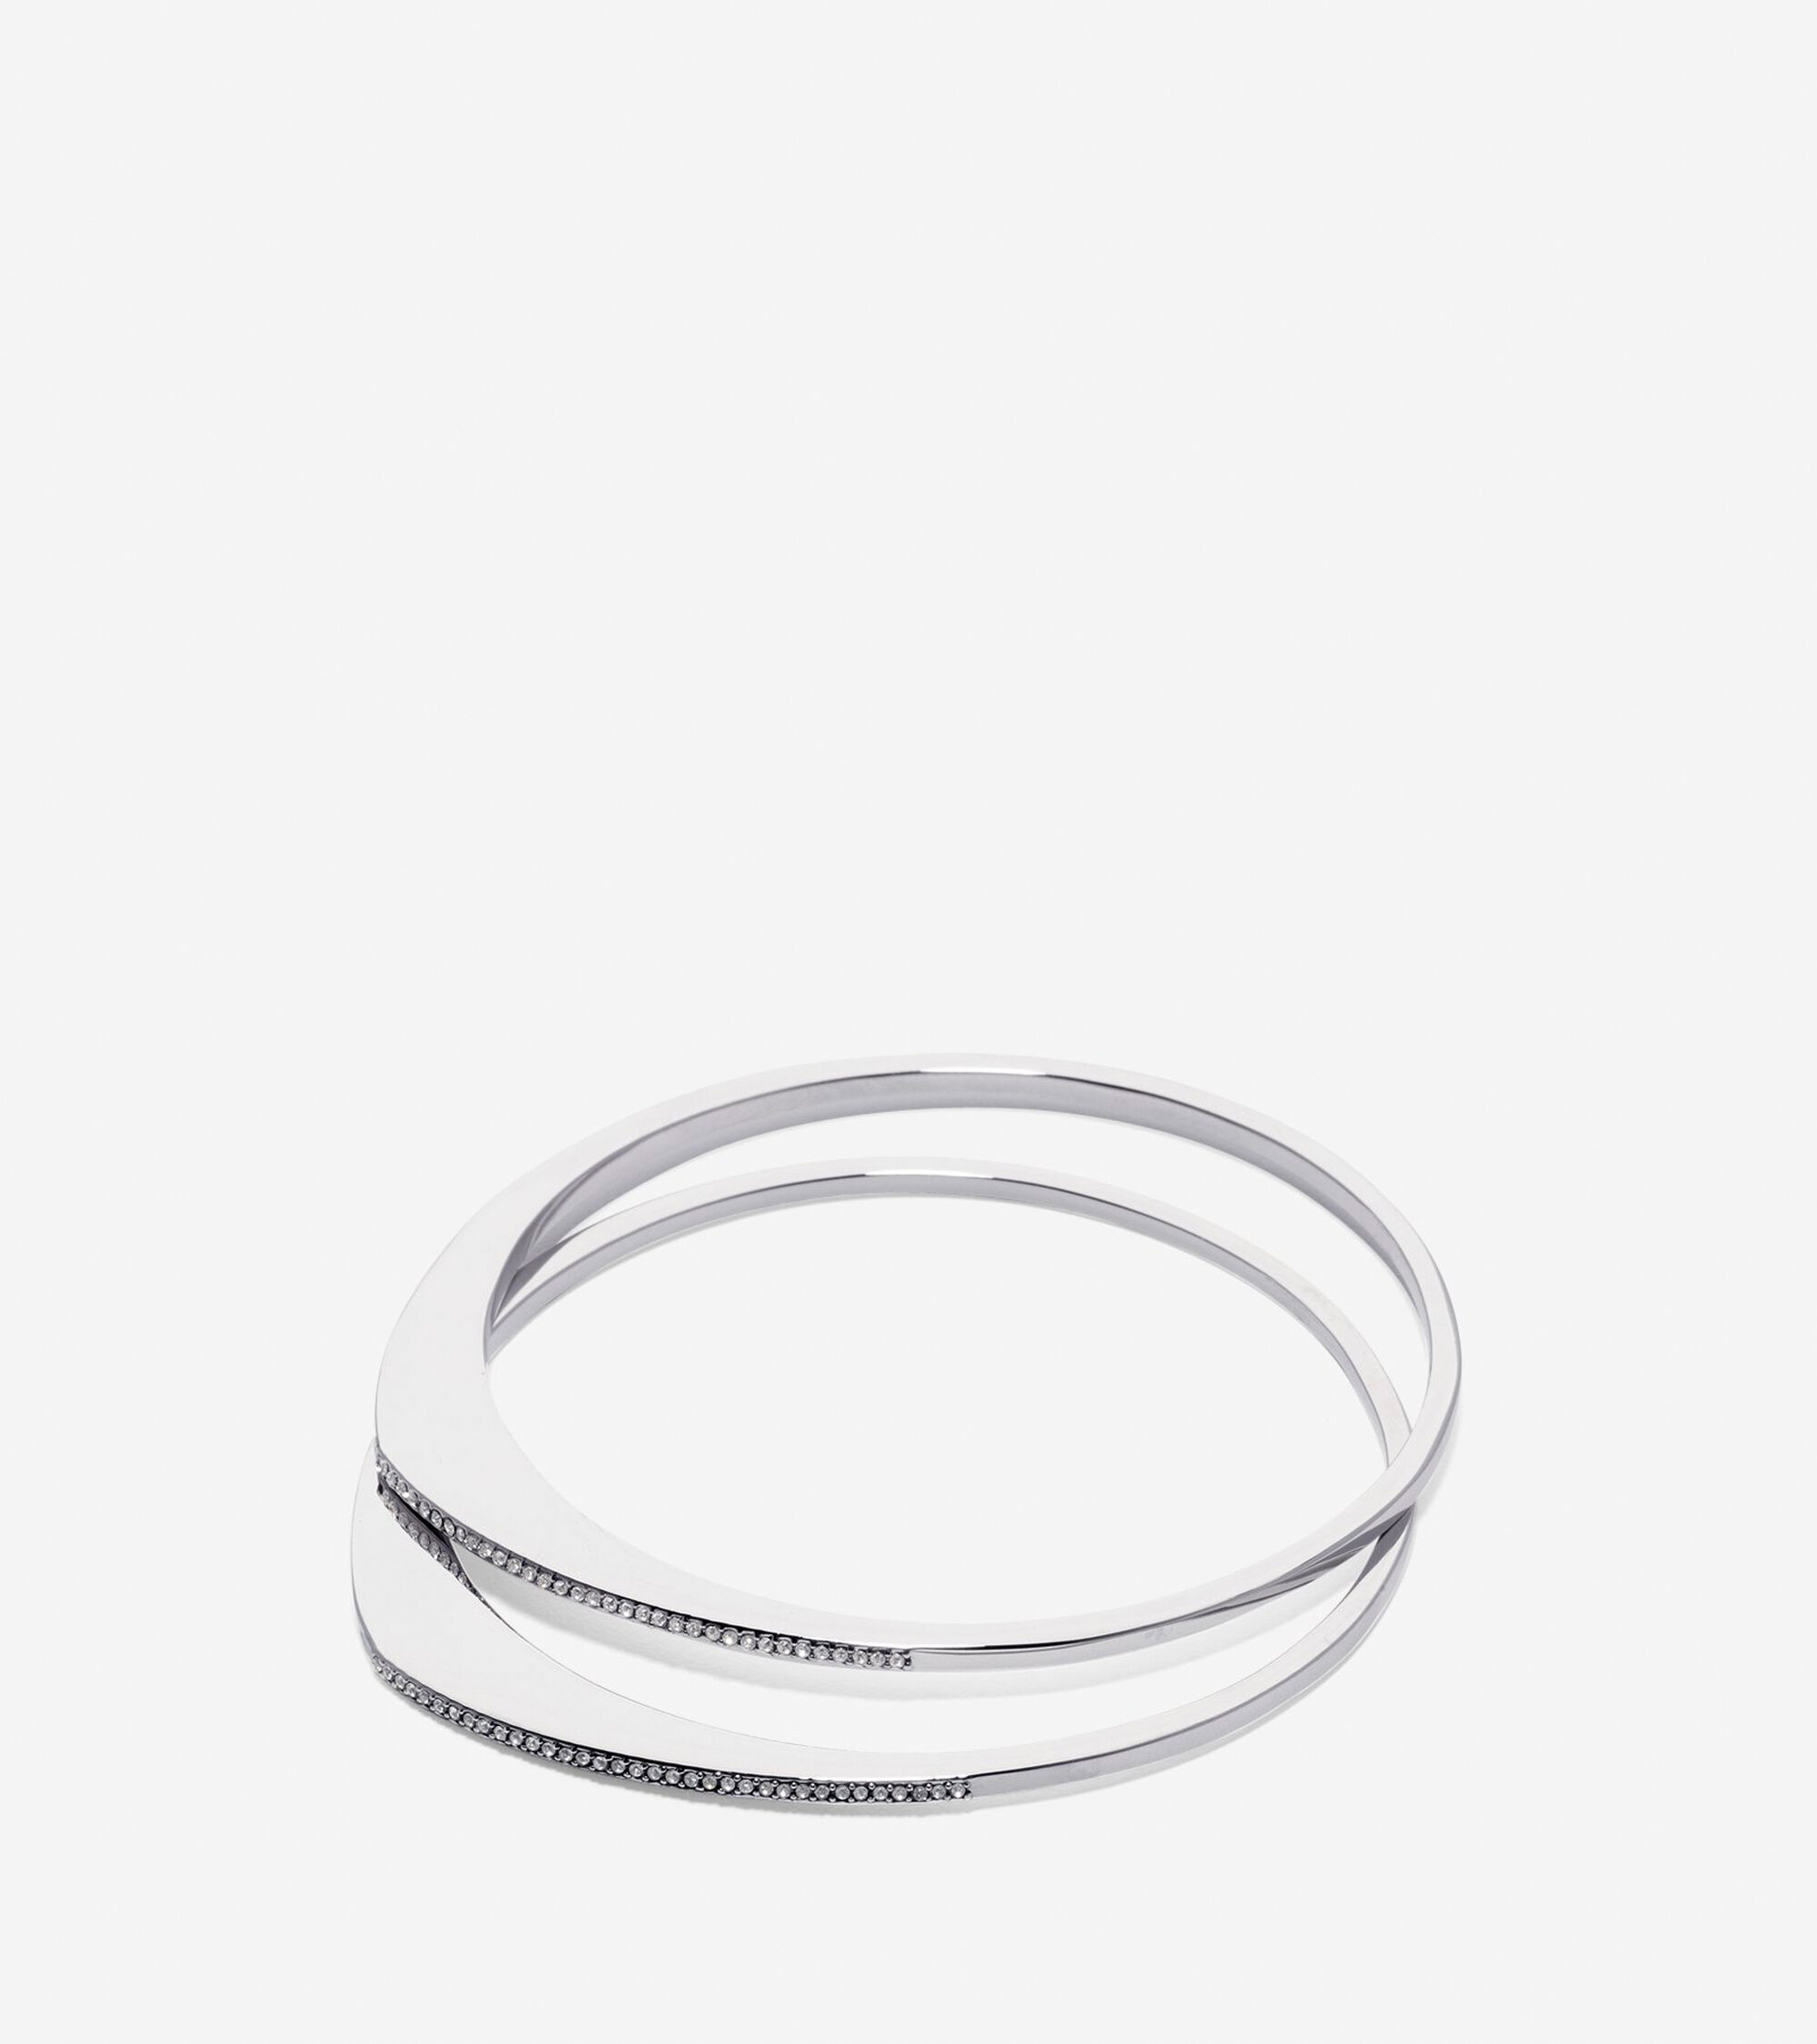 bracelets brace bangle mera diamond pave nicole bangles